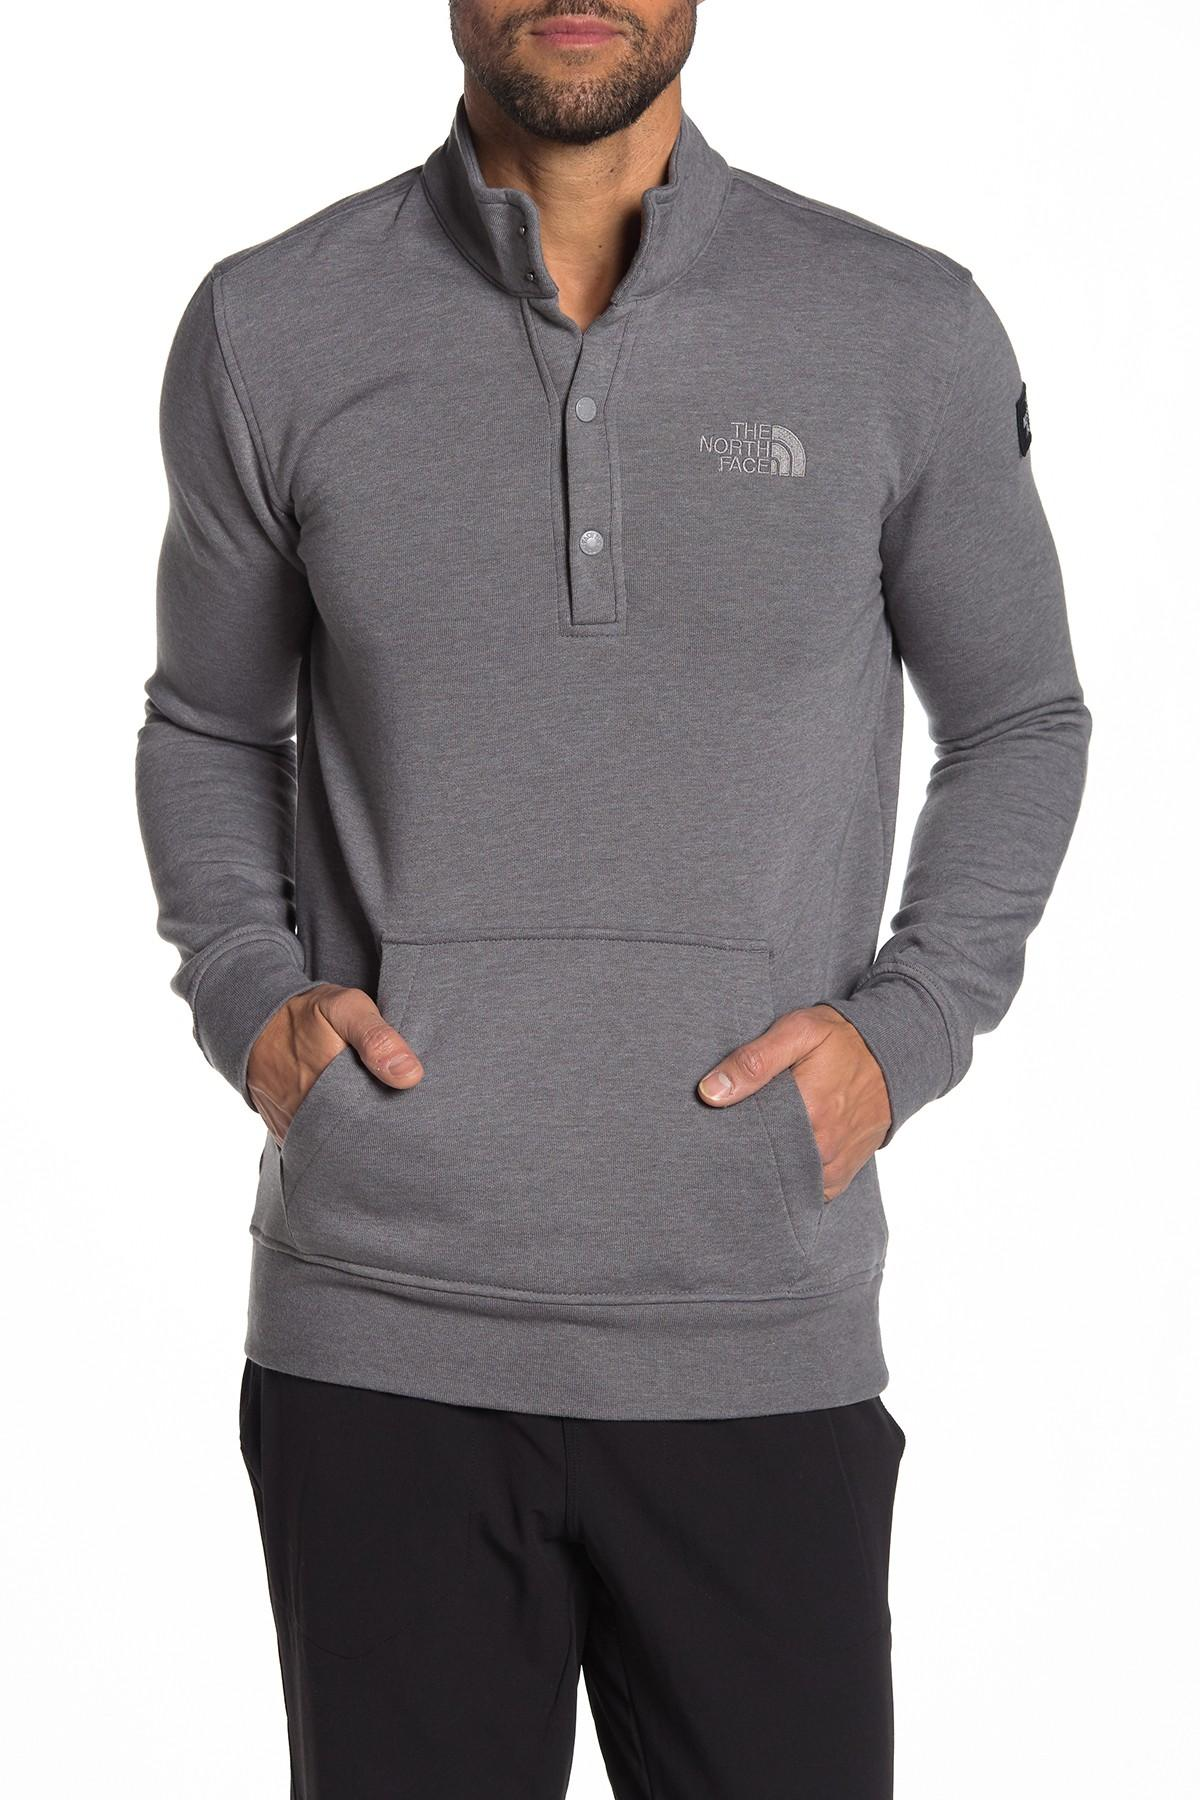 e0b9e3383 Lyst - The North Face Snap Neck Knit Jacket in Gray for Men